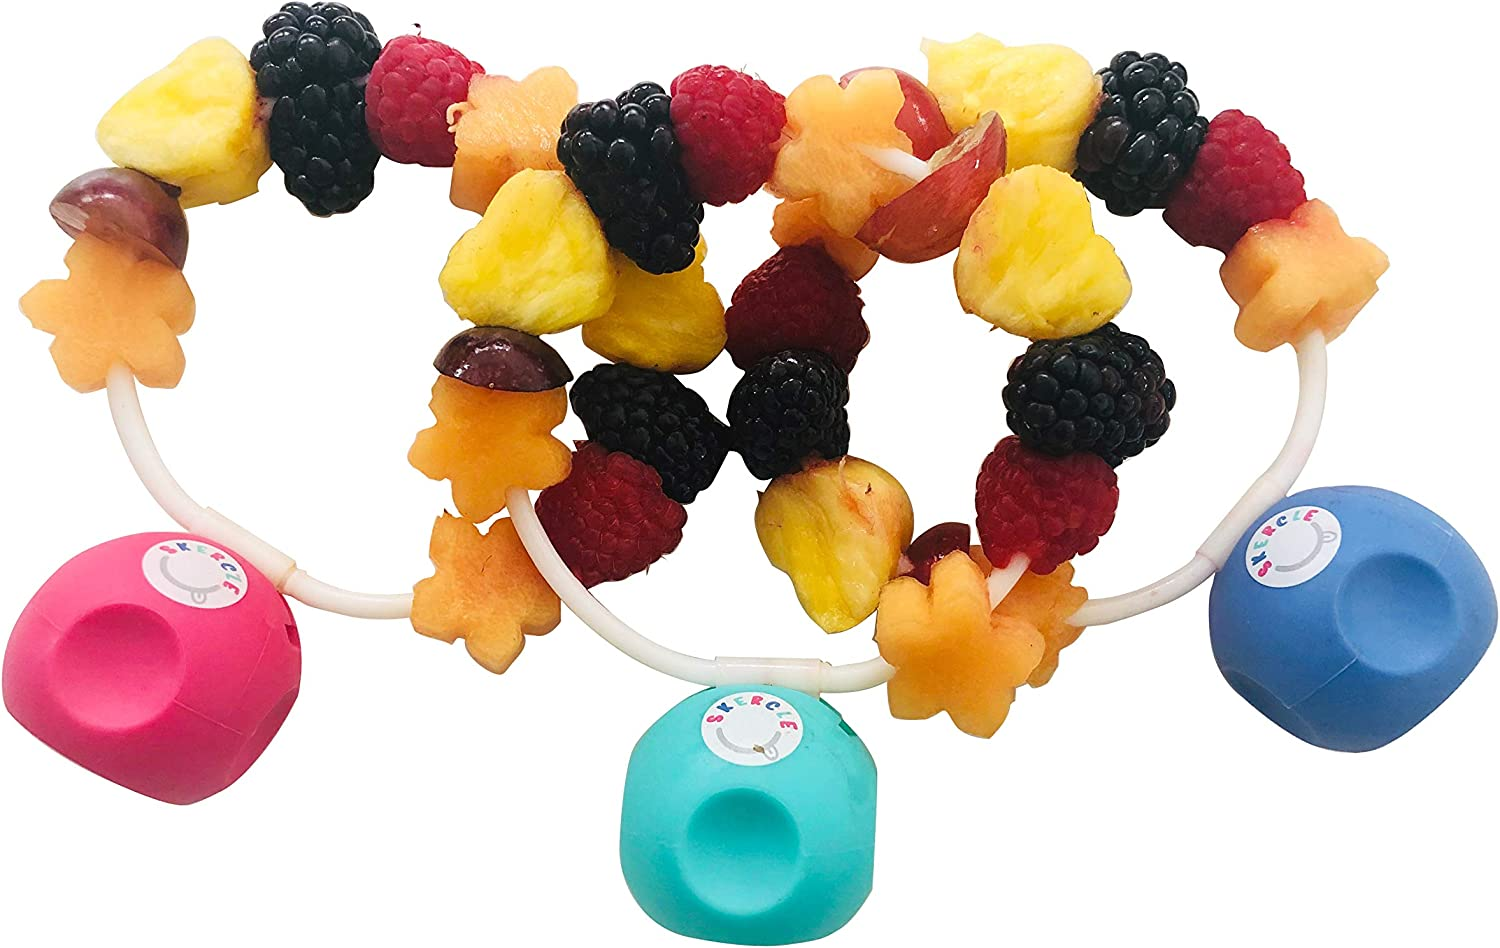 Skercle: the Skewer that a Circle! Safe, enclosed circular skewers. Rounded handle. Great for kids snacks, lunchboxes, finger food and party platters. Set of 3 with soft silicone rounded handle.